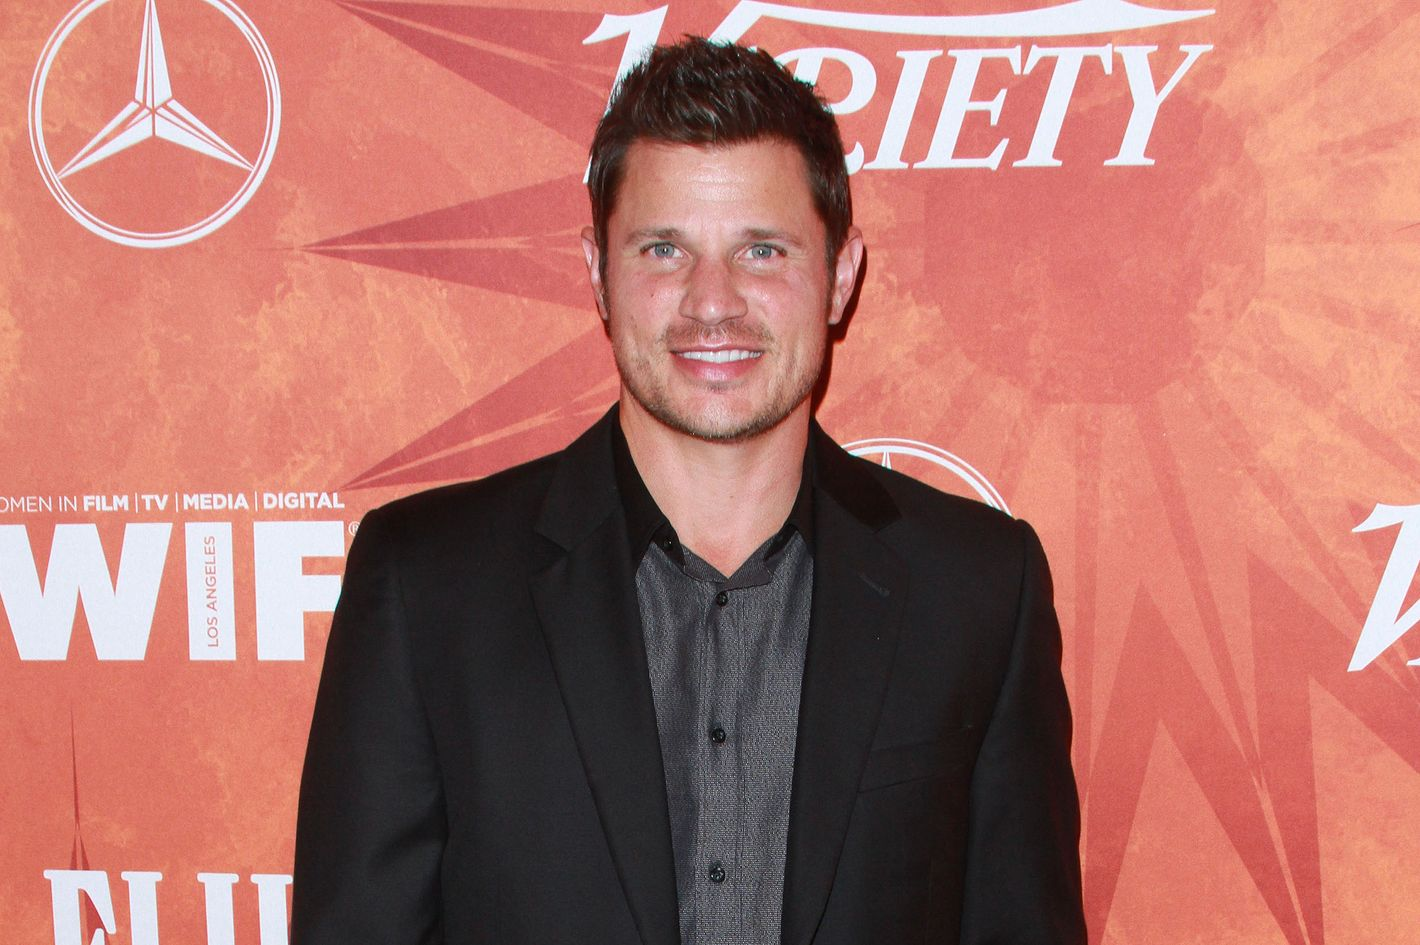 How much did Nick Lachey get in divorce?